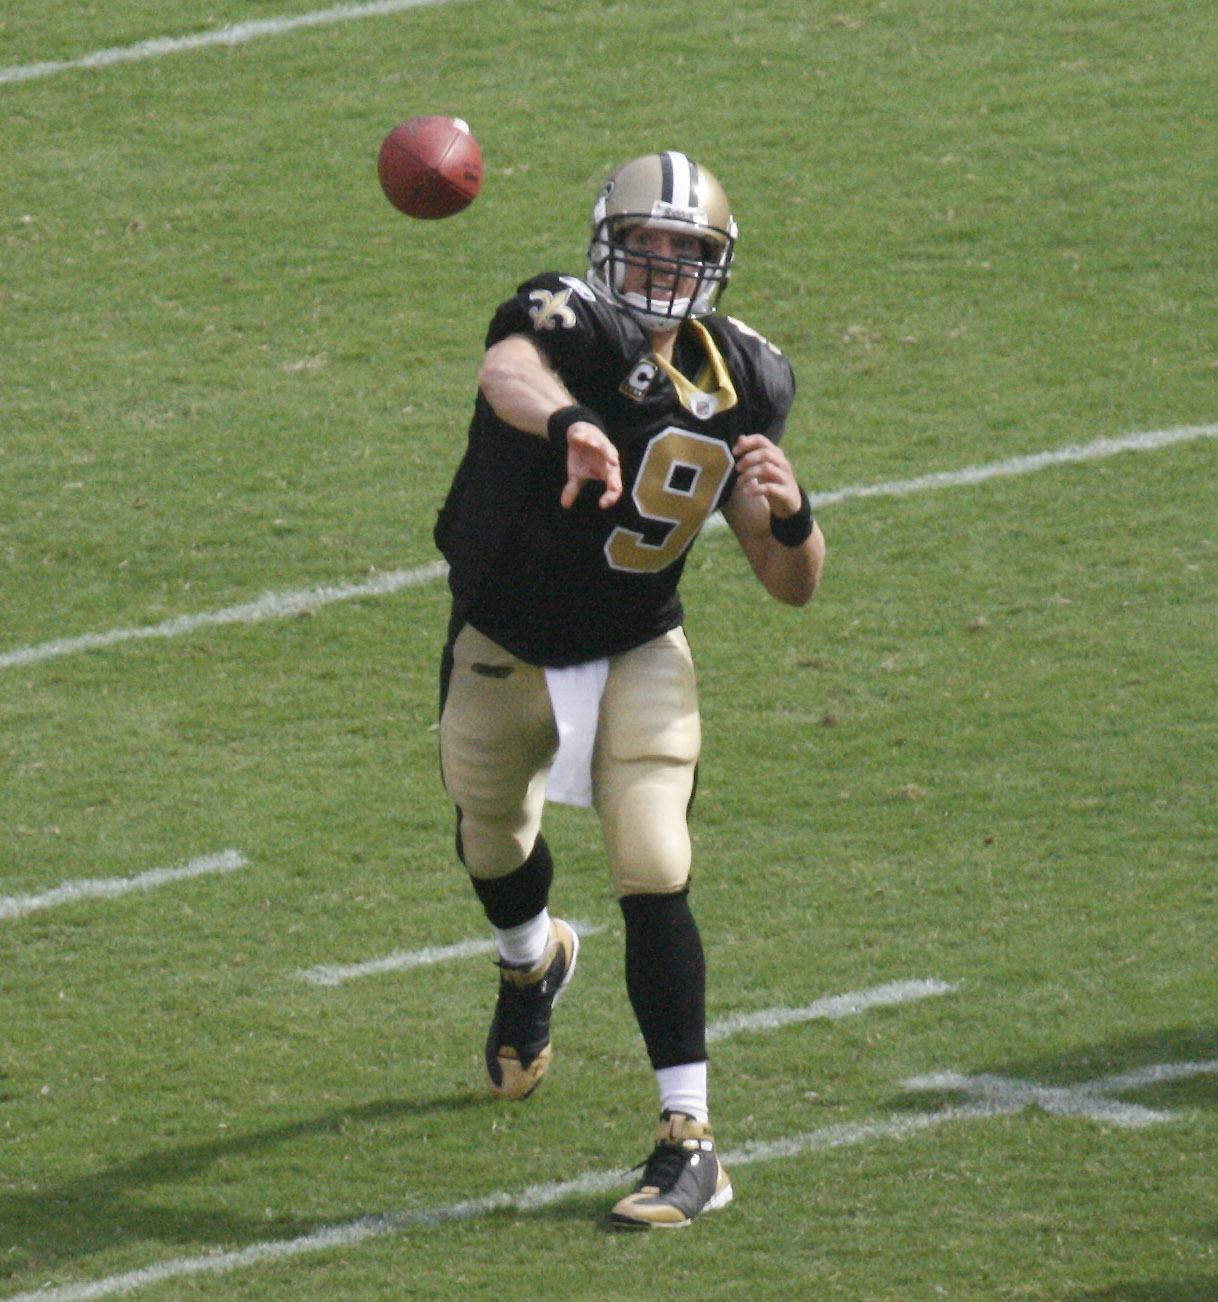 Drew Brees Wikipedia